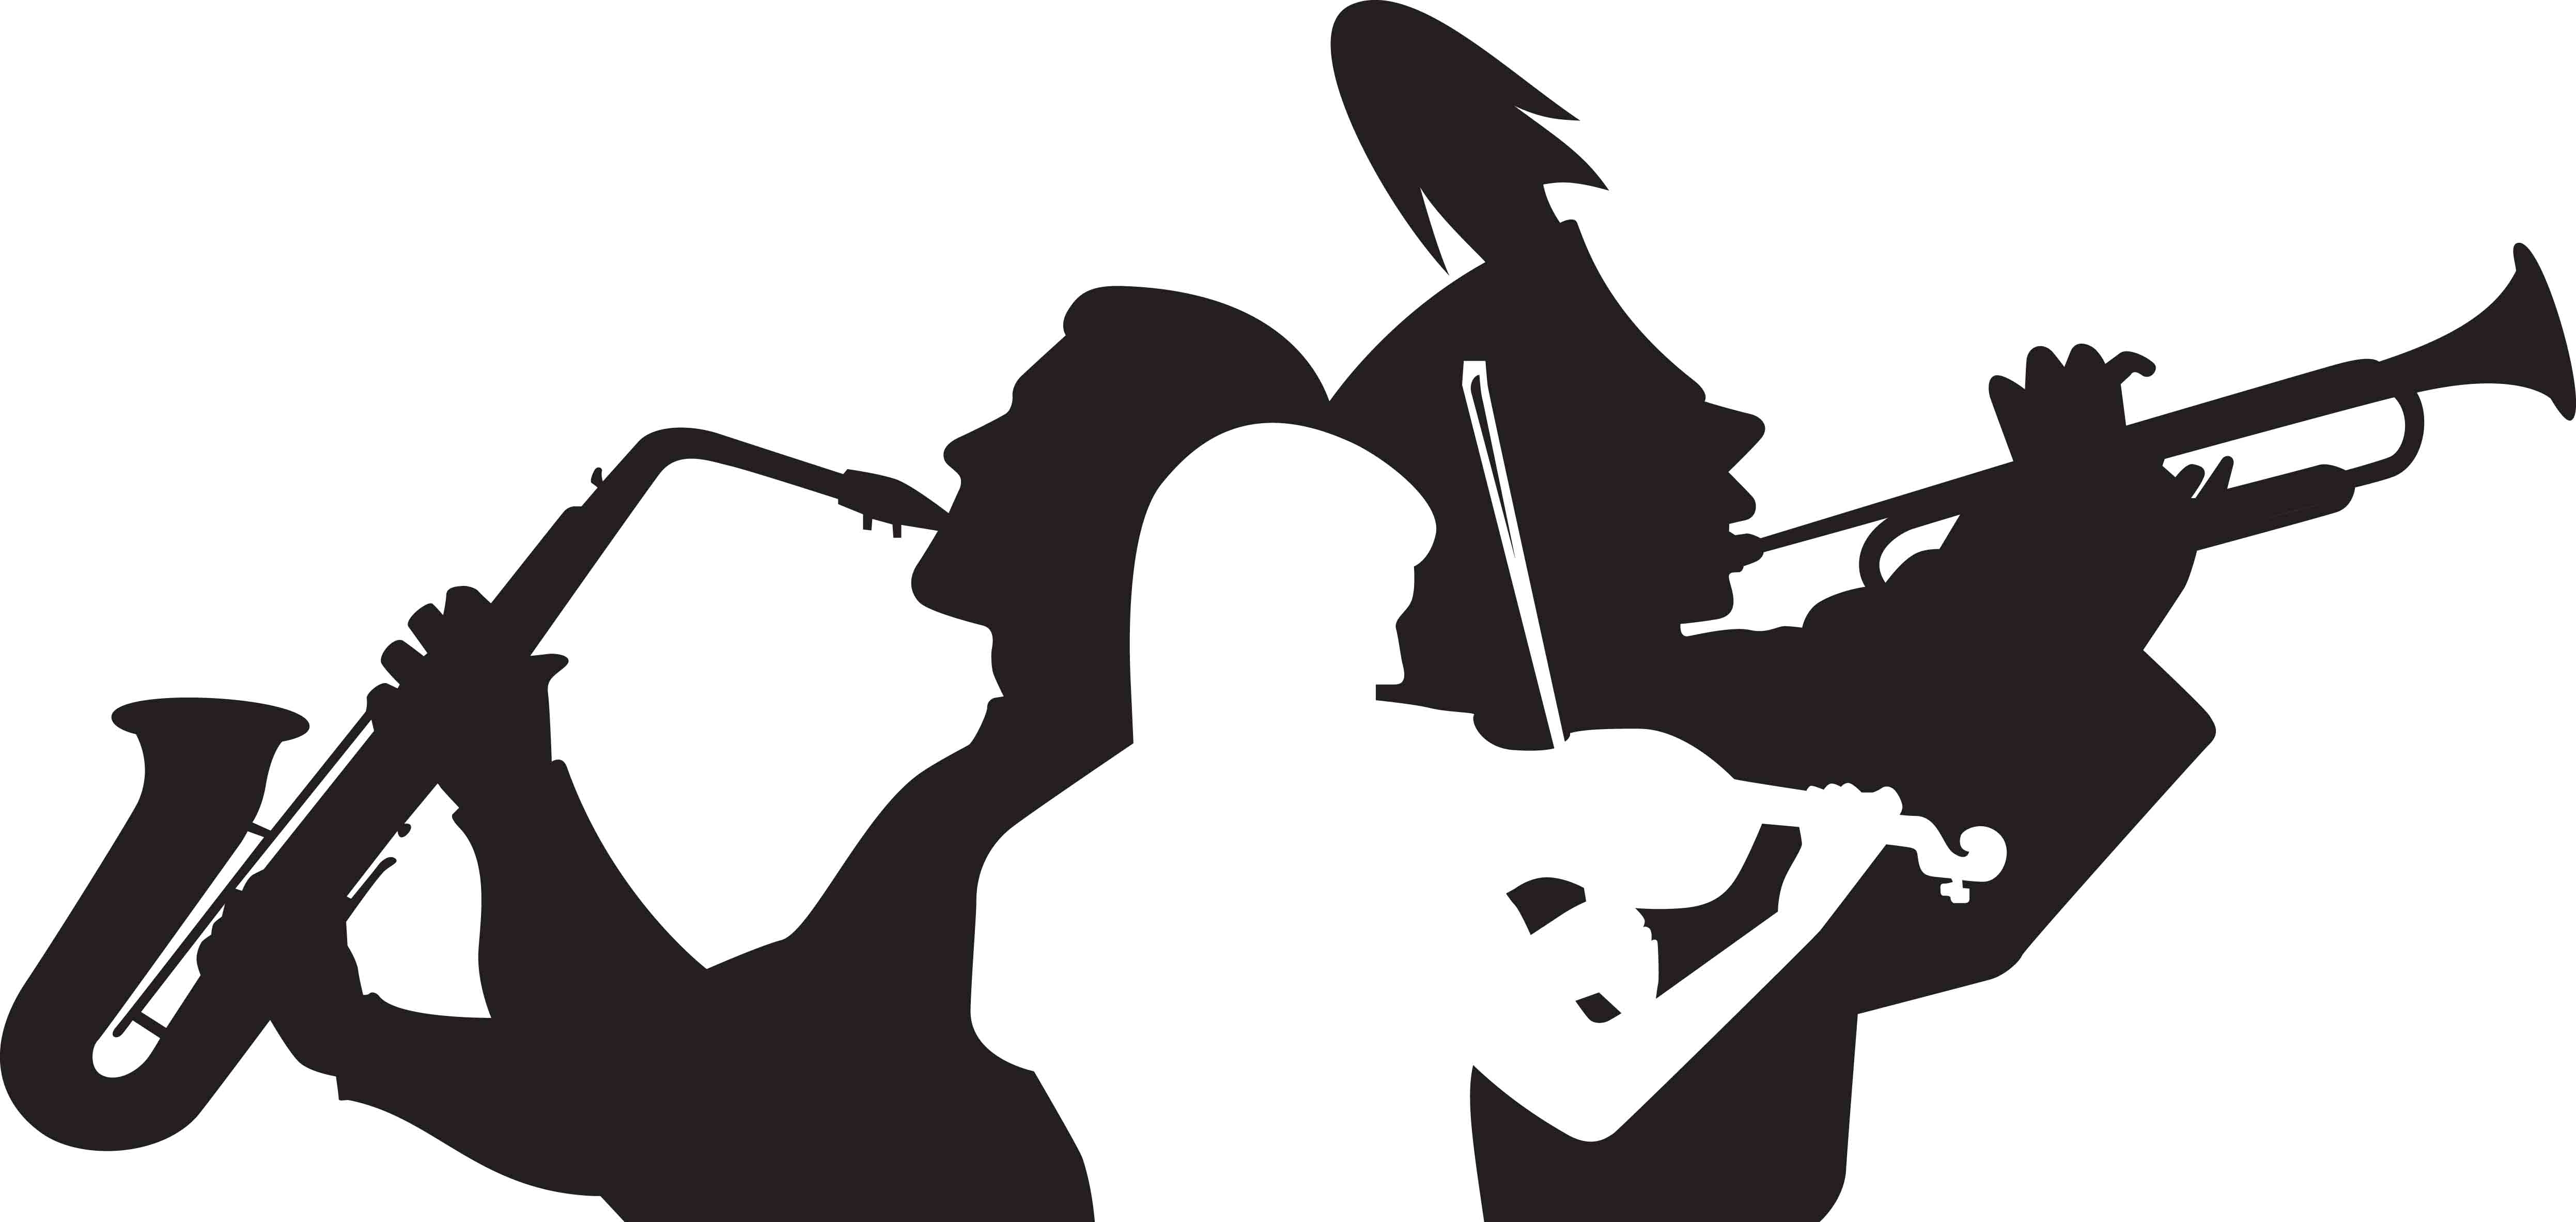 Marching silhouette at getdrawings. Band clipart music ensemble